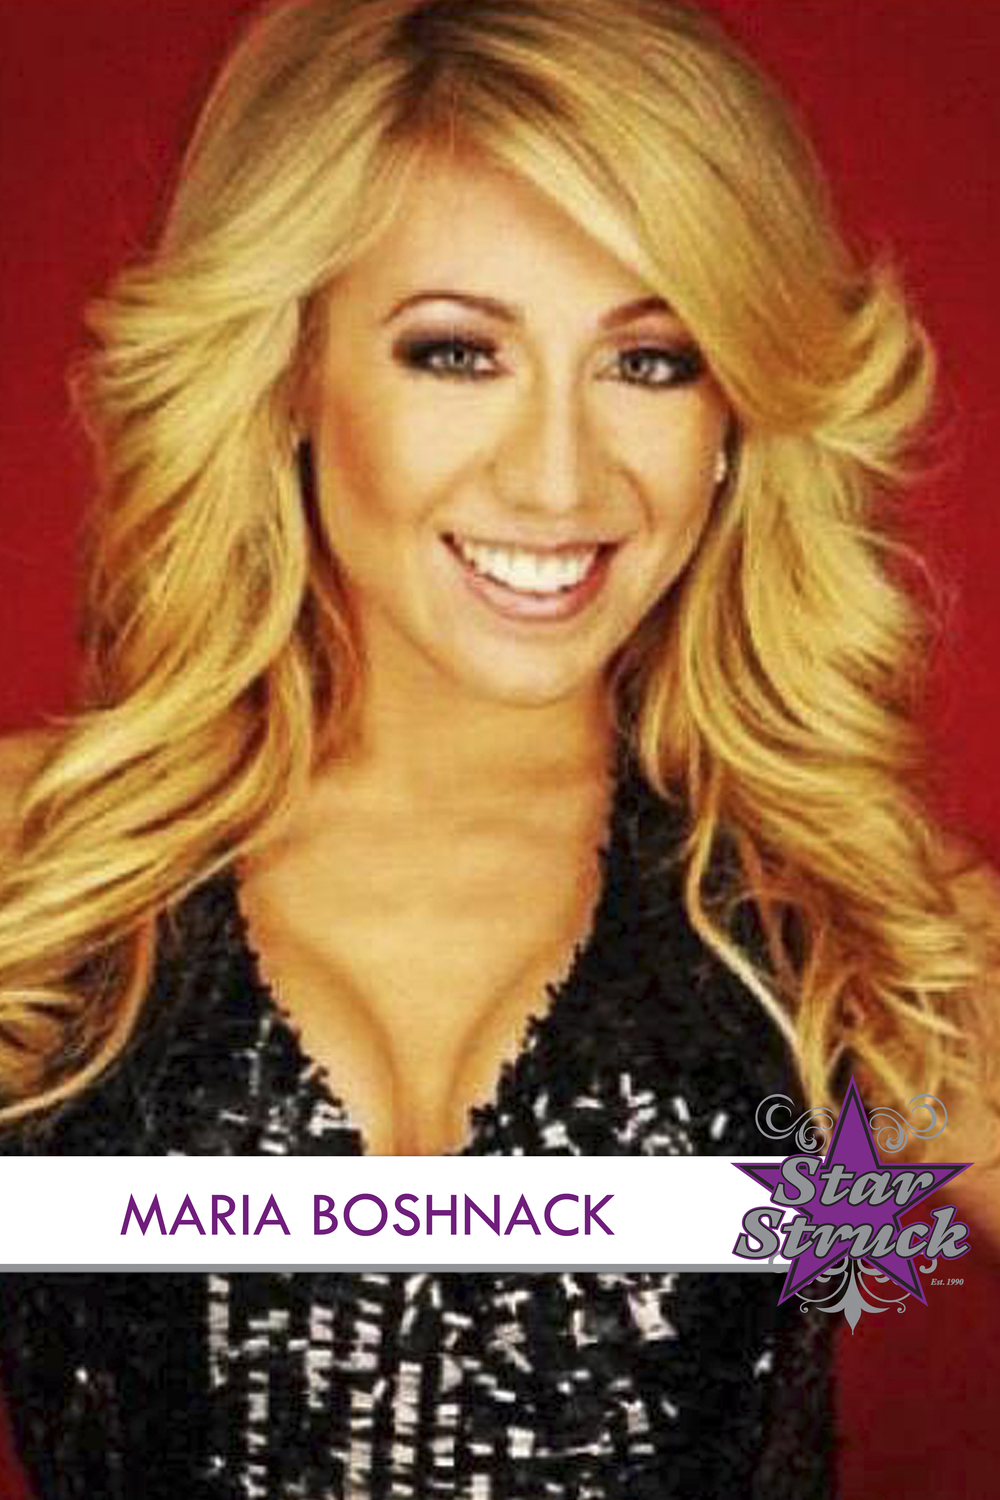 "MARIA BOSHNACK    Maria Boshnack began dancing at Star Struck 23 years ago under the instruction of Miss Gail and hasn't stopped yet! She has studied with numerous master choreographers and is trained in all aspects of dance and acrobatics. While dancing competitively, Maria was awarded many scholarships recognizing her passion and love for dance. In 2010 she competed in the Miss Staten Island Pageant and received the Performing Arts Award along with being named 3rd runner up. Maria danced professionally for the NBA as a New Jersey Nets Dancer and a Brooklynettes dancer. While working for the NBA, she had the opportunity to dance in China, Istanbul, Mexico City, and England as well as various events. Maria graduated from Hunter College in 2012 with a Bachelors Degree in English and recently obtained her Masters Degree in  Early Childhood and Special Education, grades 1-6. During the day, Maria is an eighth grade English teacher at a local middle school. She hopes to present herself as a positive role model and instill her passion for dance in all of her students. Maria feels blessed to be able to do what she loves every day, with the people she loves! ""Let us read and let us dance - two amusements that will never do any harm to the world."" -Voltaire"